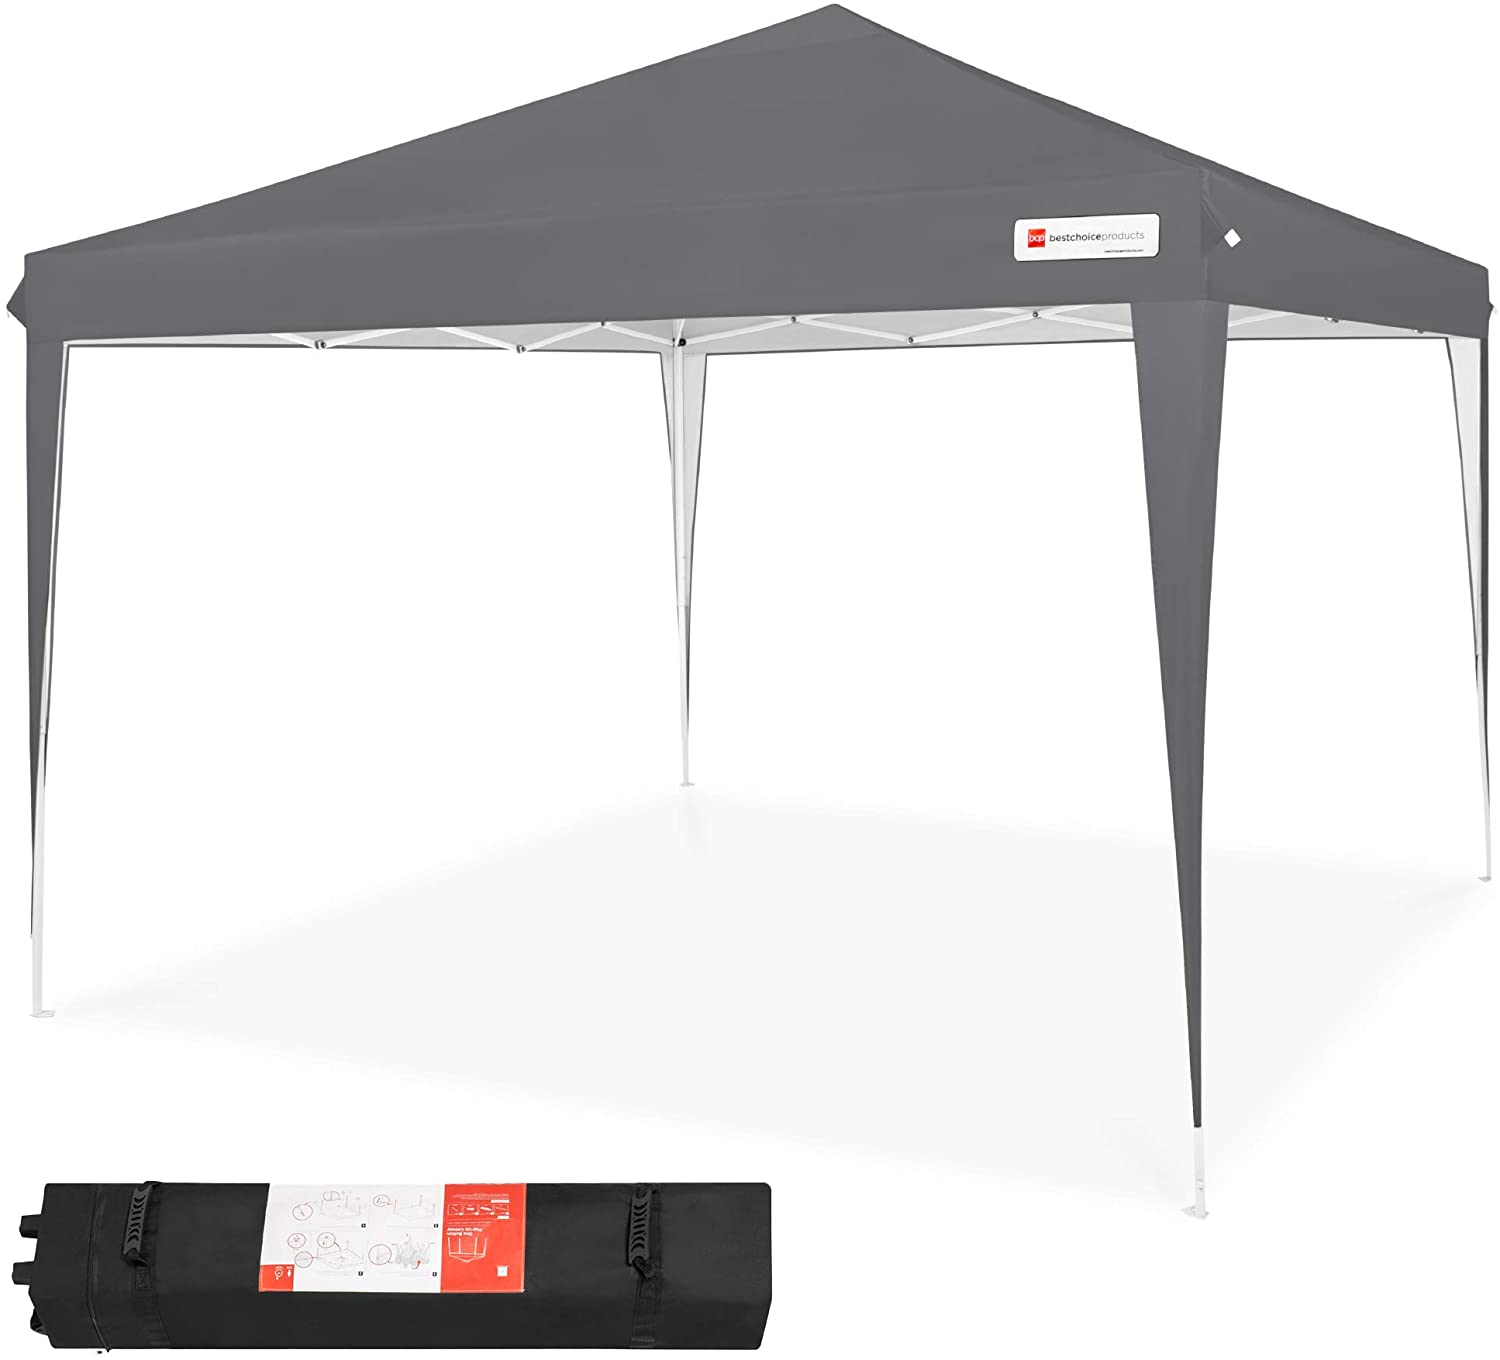 best Best Choice Product Outdoor Pop Up Gazebo Canopy Shade Portable Tent, Wind Vent Folding Instant